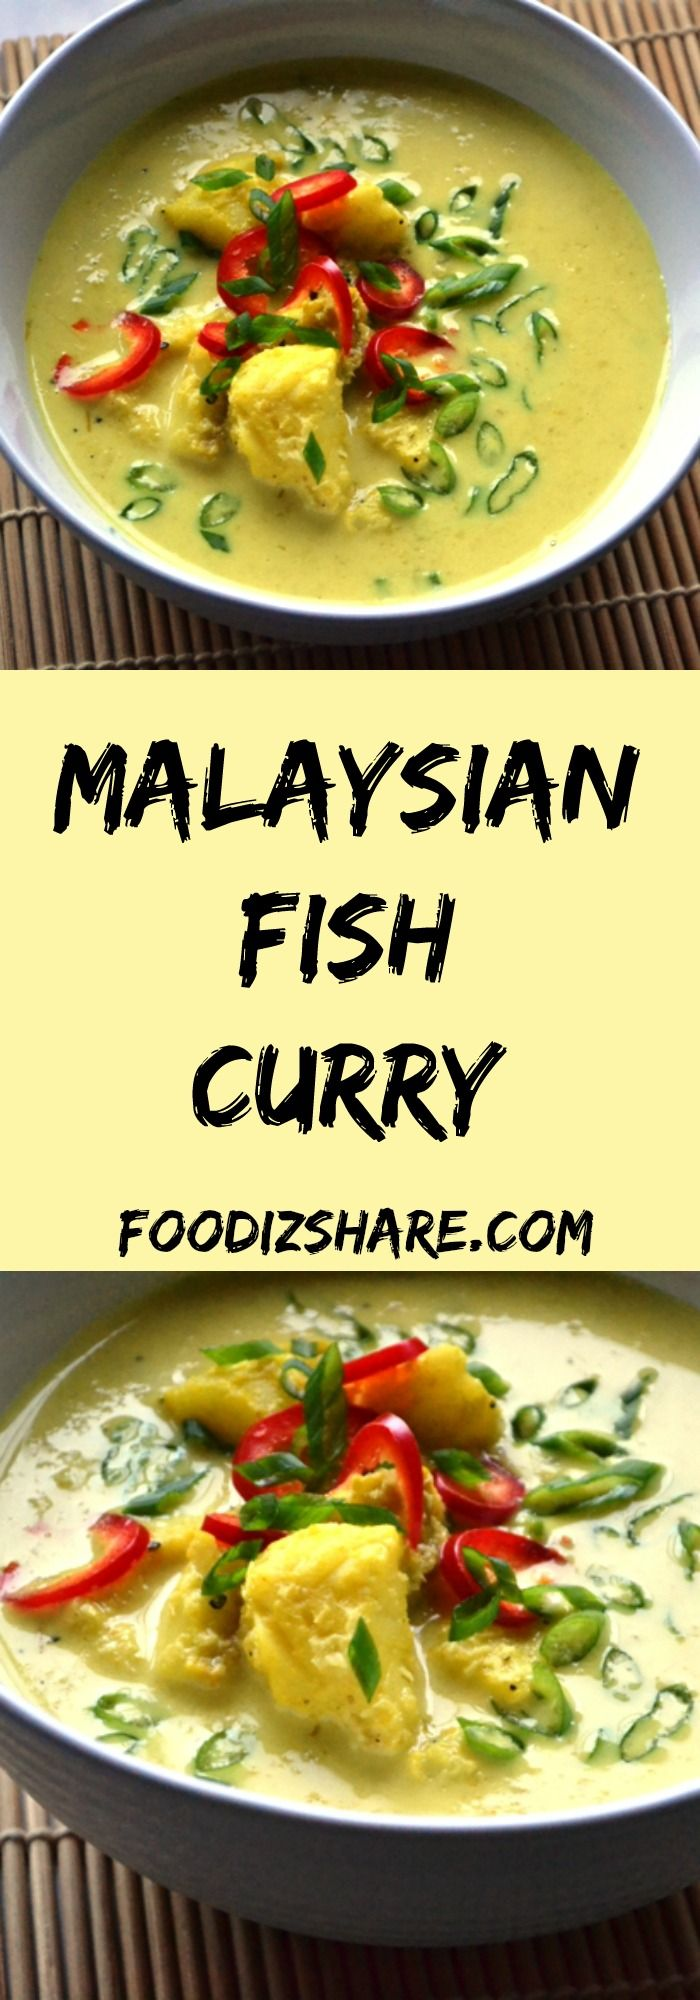 A deliciously rich, coconut based fish curry popular in Malaysia. #glutenfree #dairyfree #fish #seafood #coconut #comfortfood #healthyfood #food #Asian #recipes